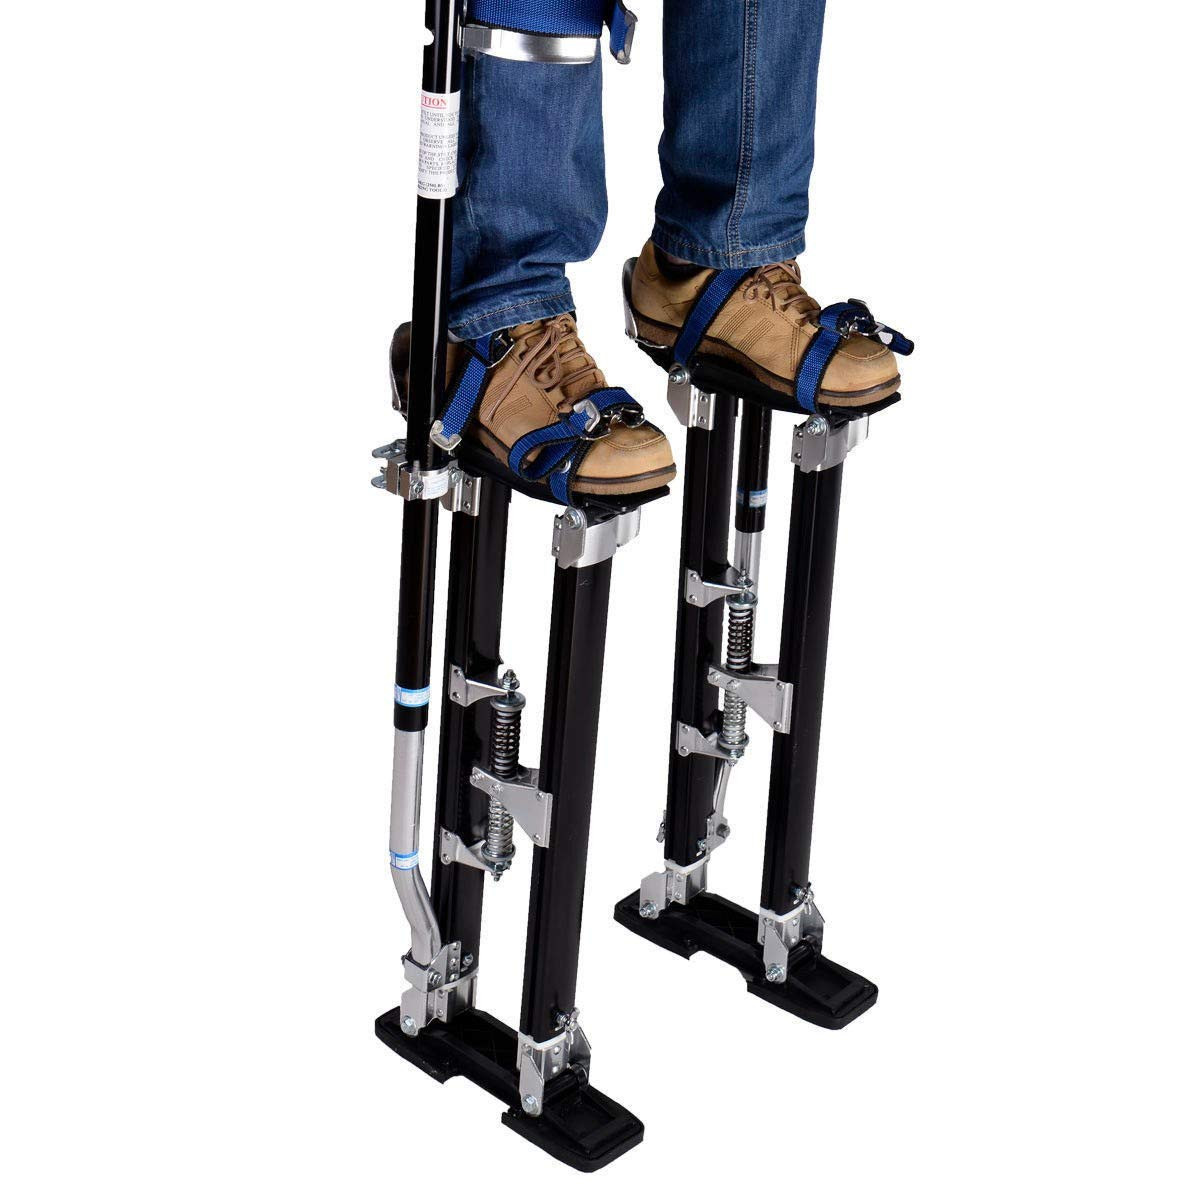 BeUniqueToday Black Height Adjustable 18''-30'' Drywall Aluminum Stilts with Strong Straps, Made of Industrial Grade Aluminum Alloy, Ergonomic Design